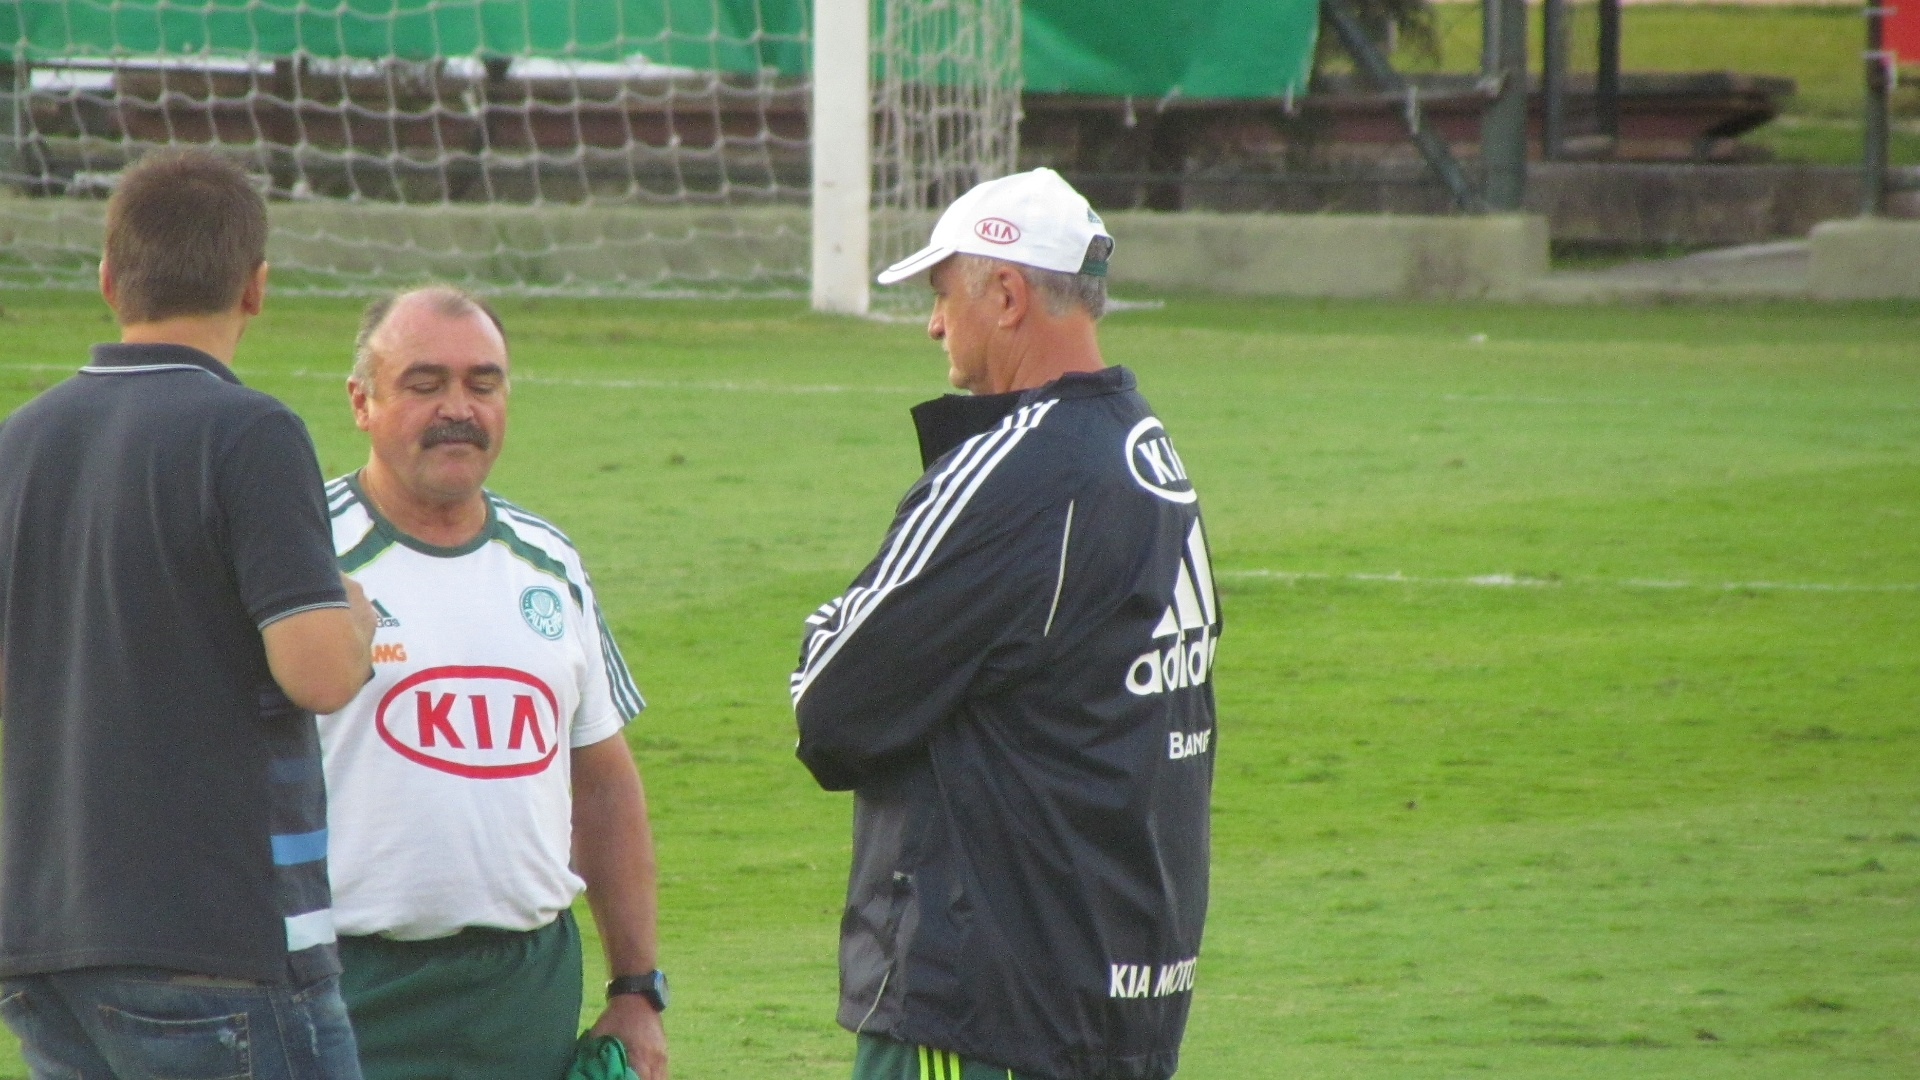 Galeano, Murtosa e Felipo conversam durante treino do Palmeiras